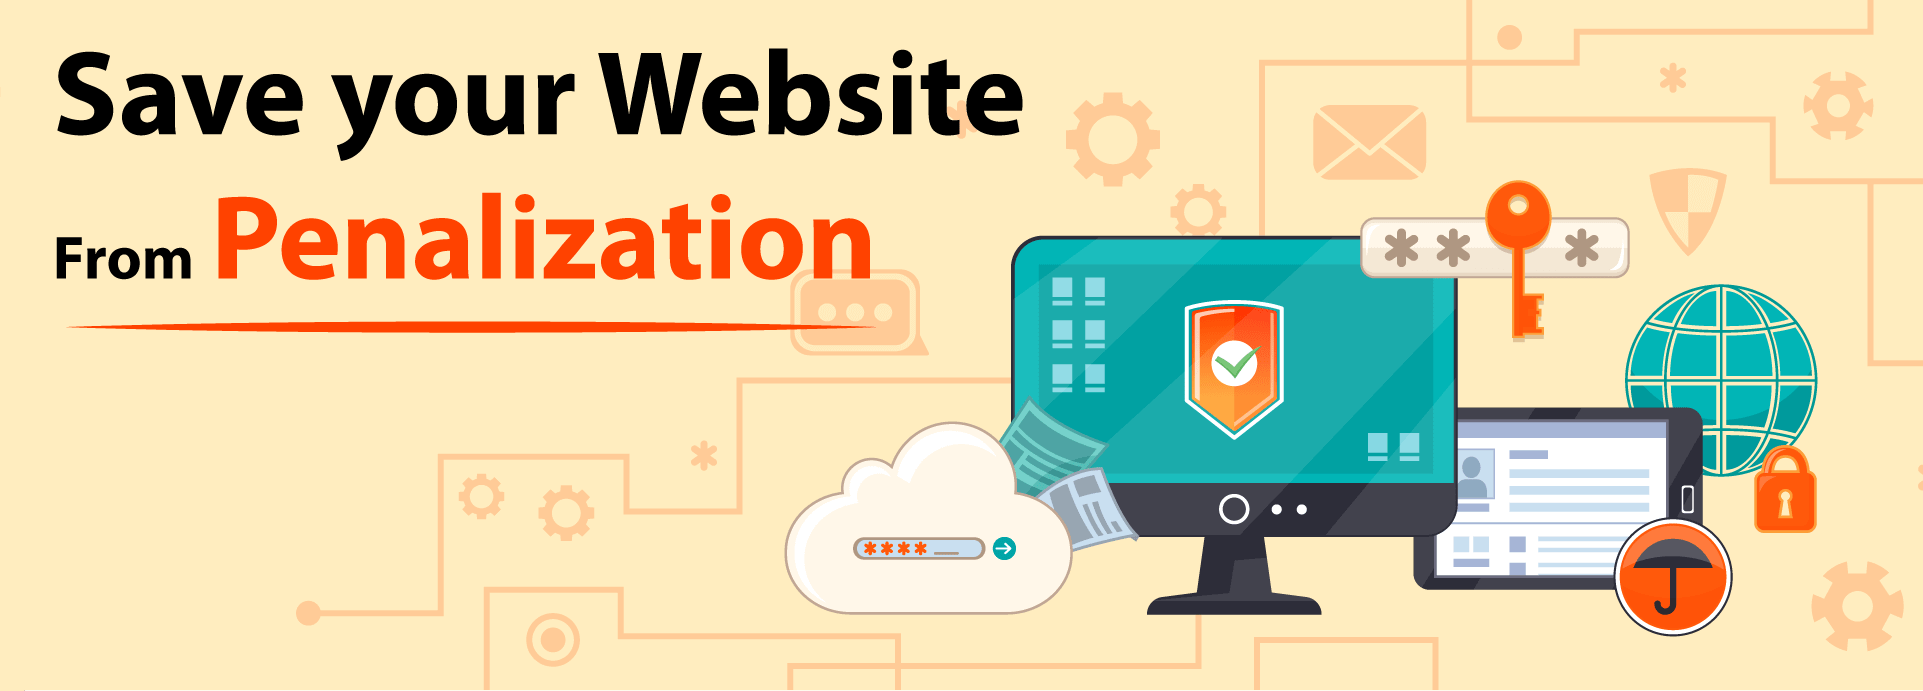 6 Factors That Can Get Your Website Penalized – Watch Out